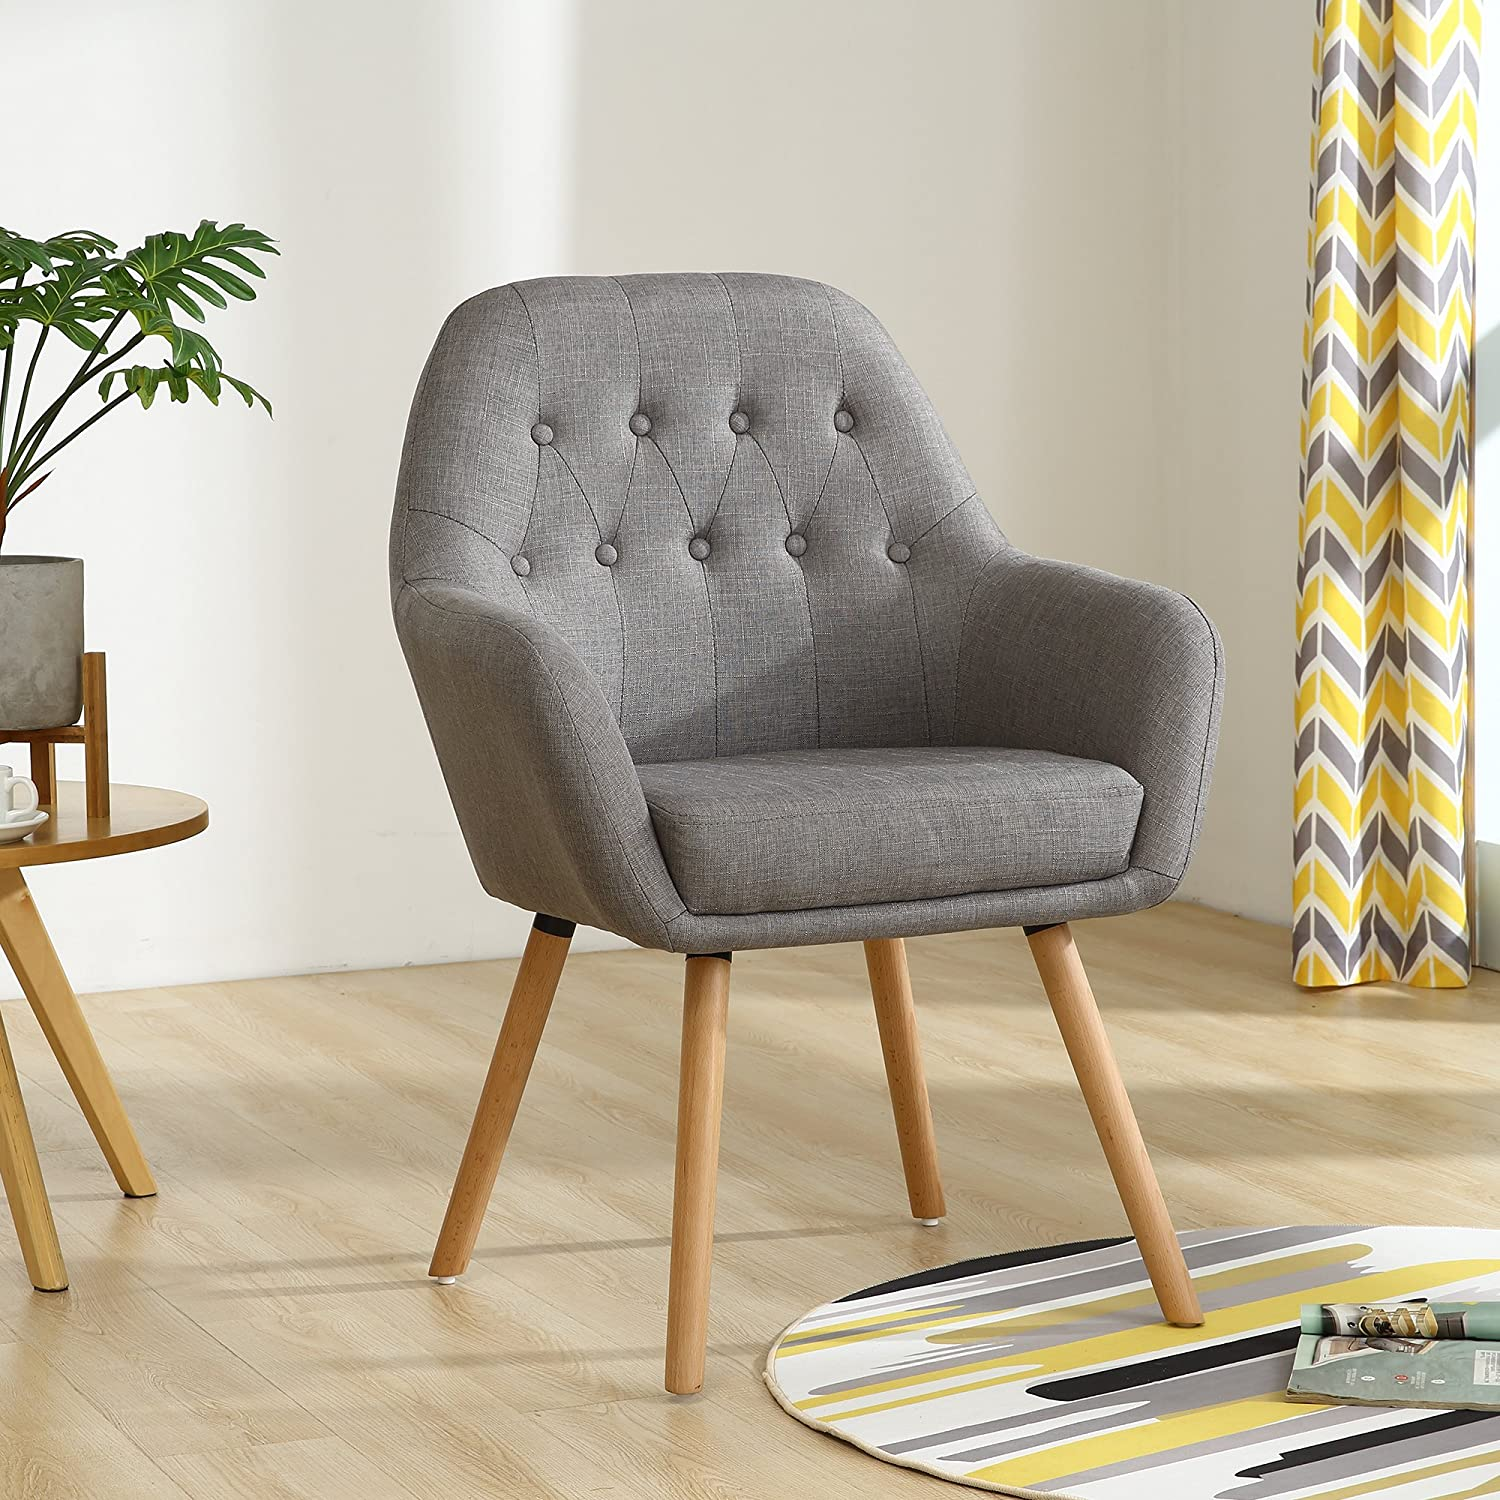 Amazon com lssbought contemporary stylish button tufted upholstered accent chair with solid wood legs gray kitchen dining